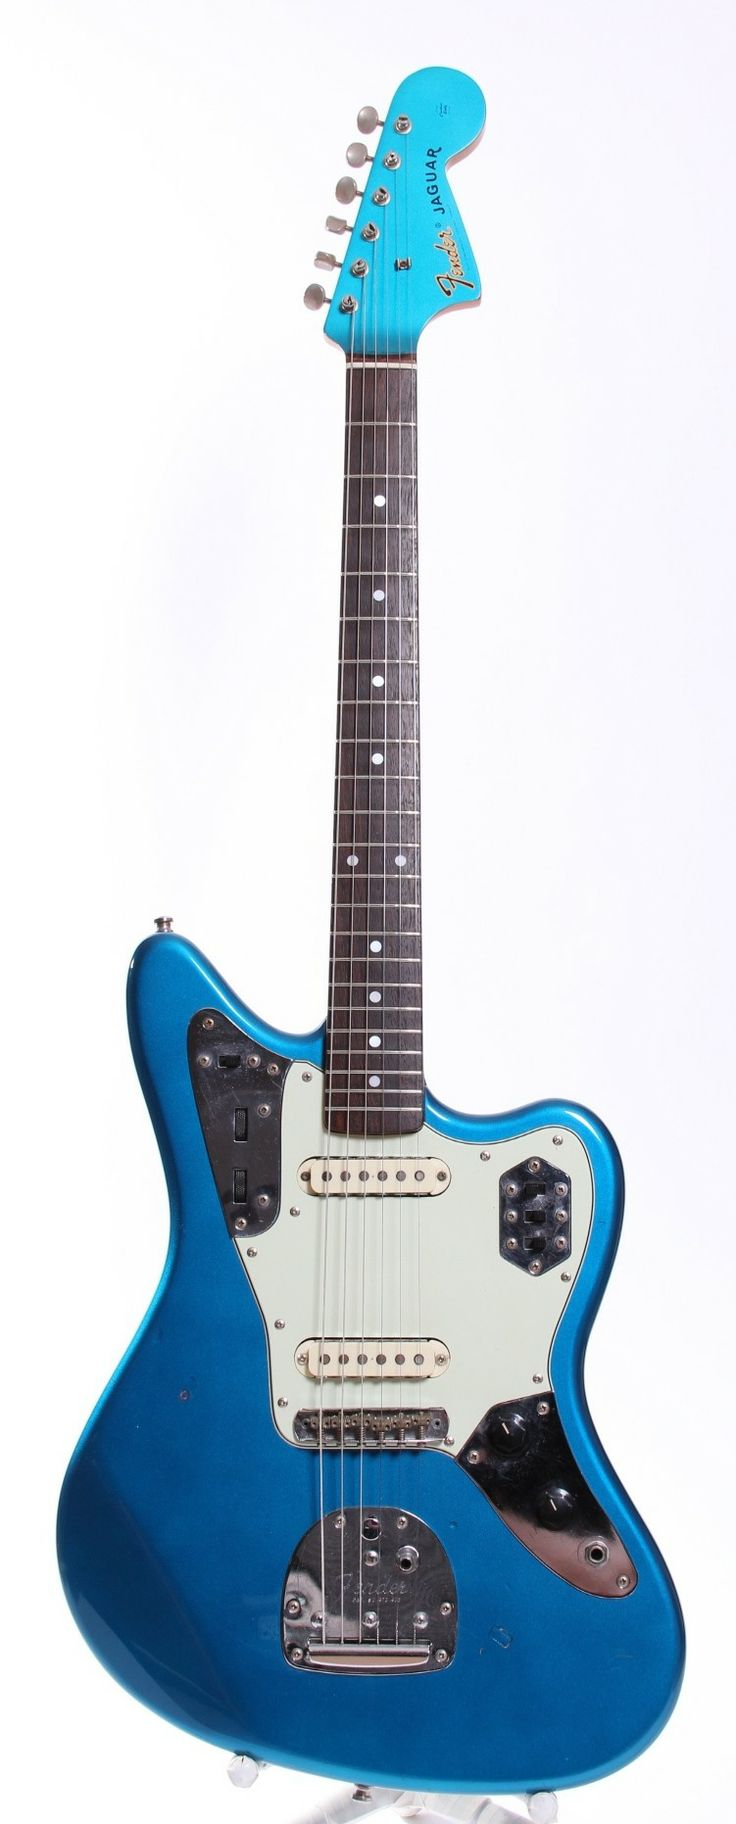 1999 Fender Japan Jaguar '66 Reissue lake placid blue via Yeahman's Vintage And Used Guitars. Click on the image to see more!